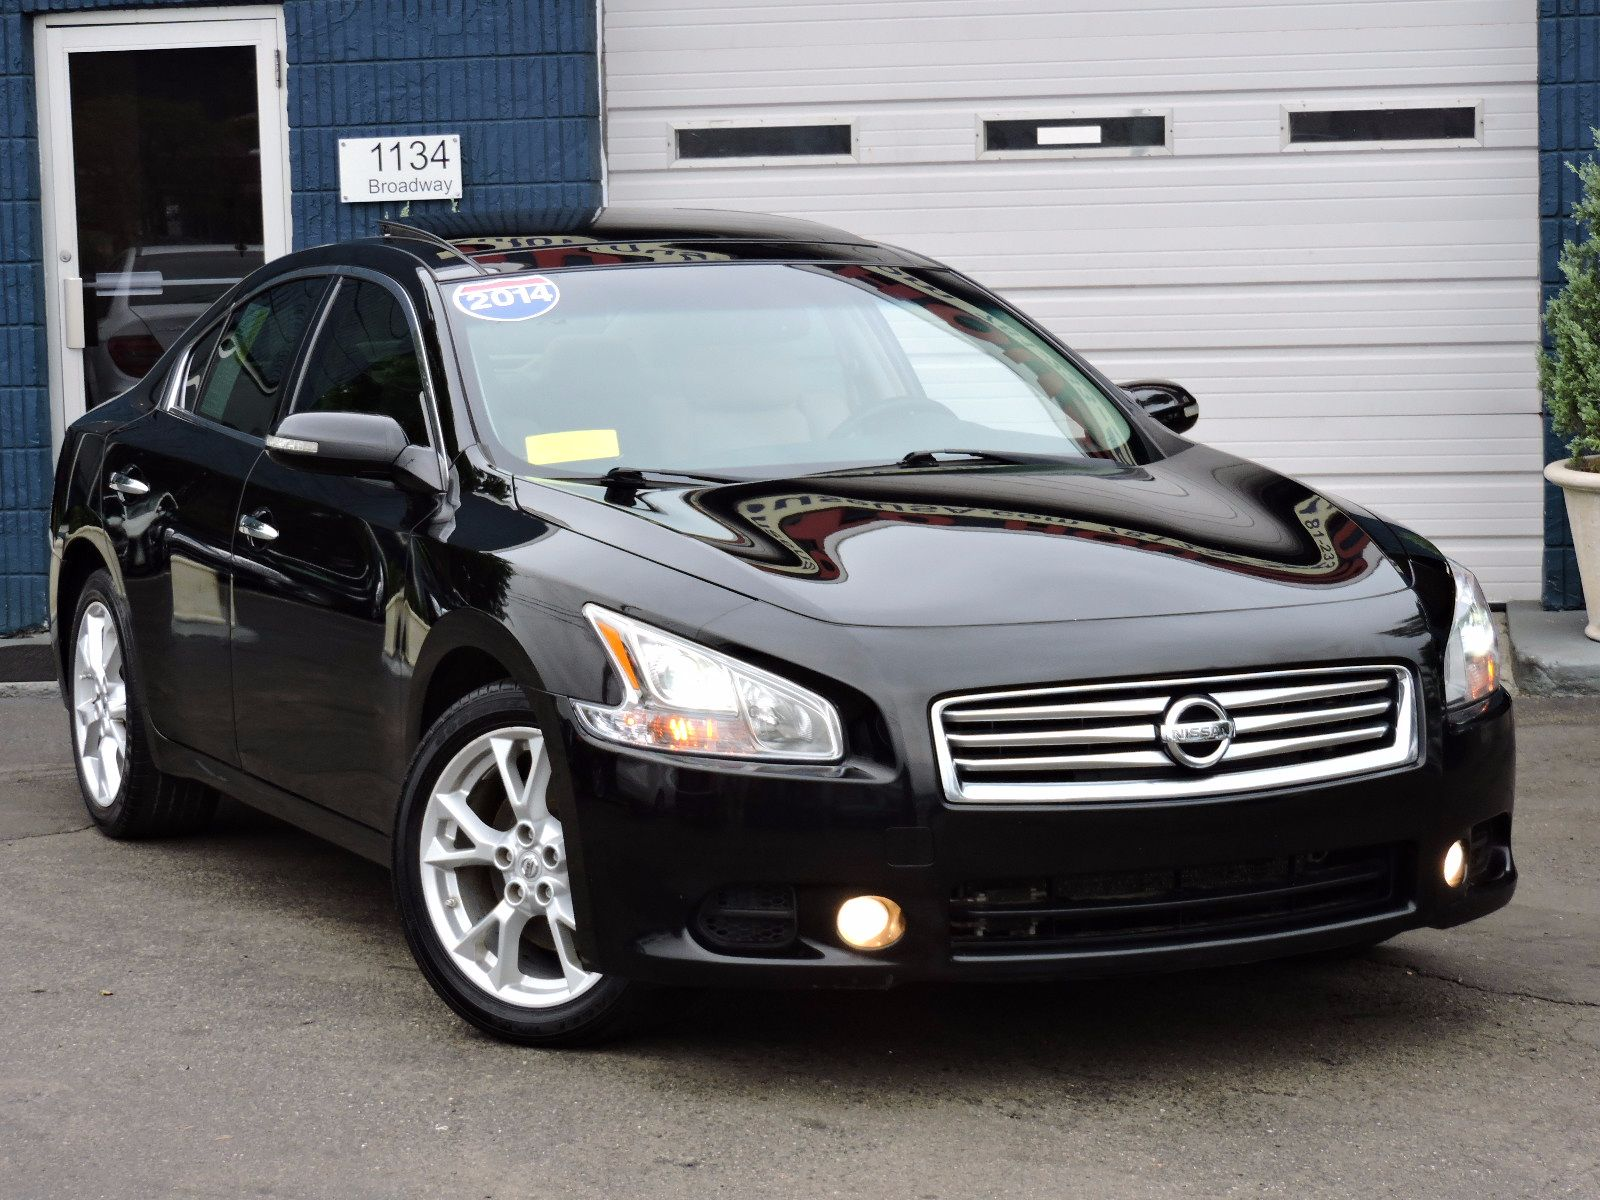 Photos of a used 2014 nissan maxima 35 sv wpremium pkg at saugus show all thumbs voltagebd Images